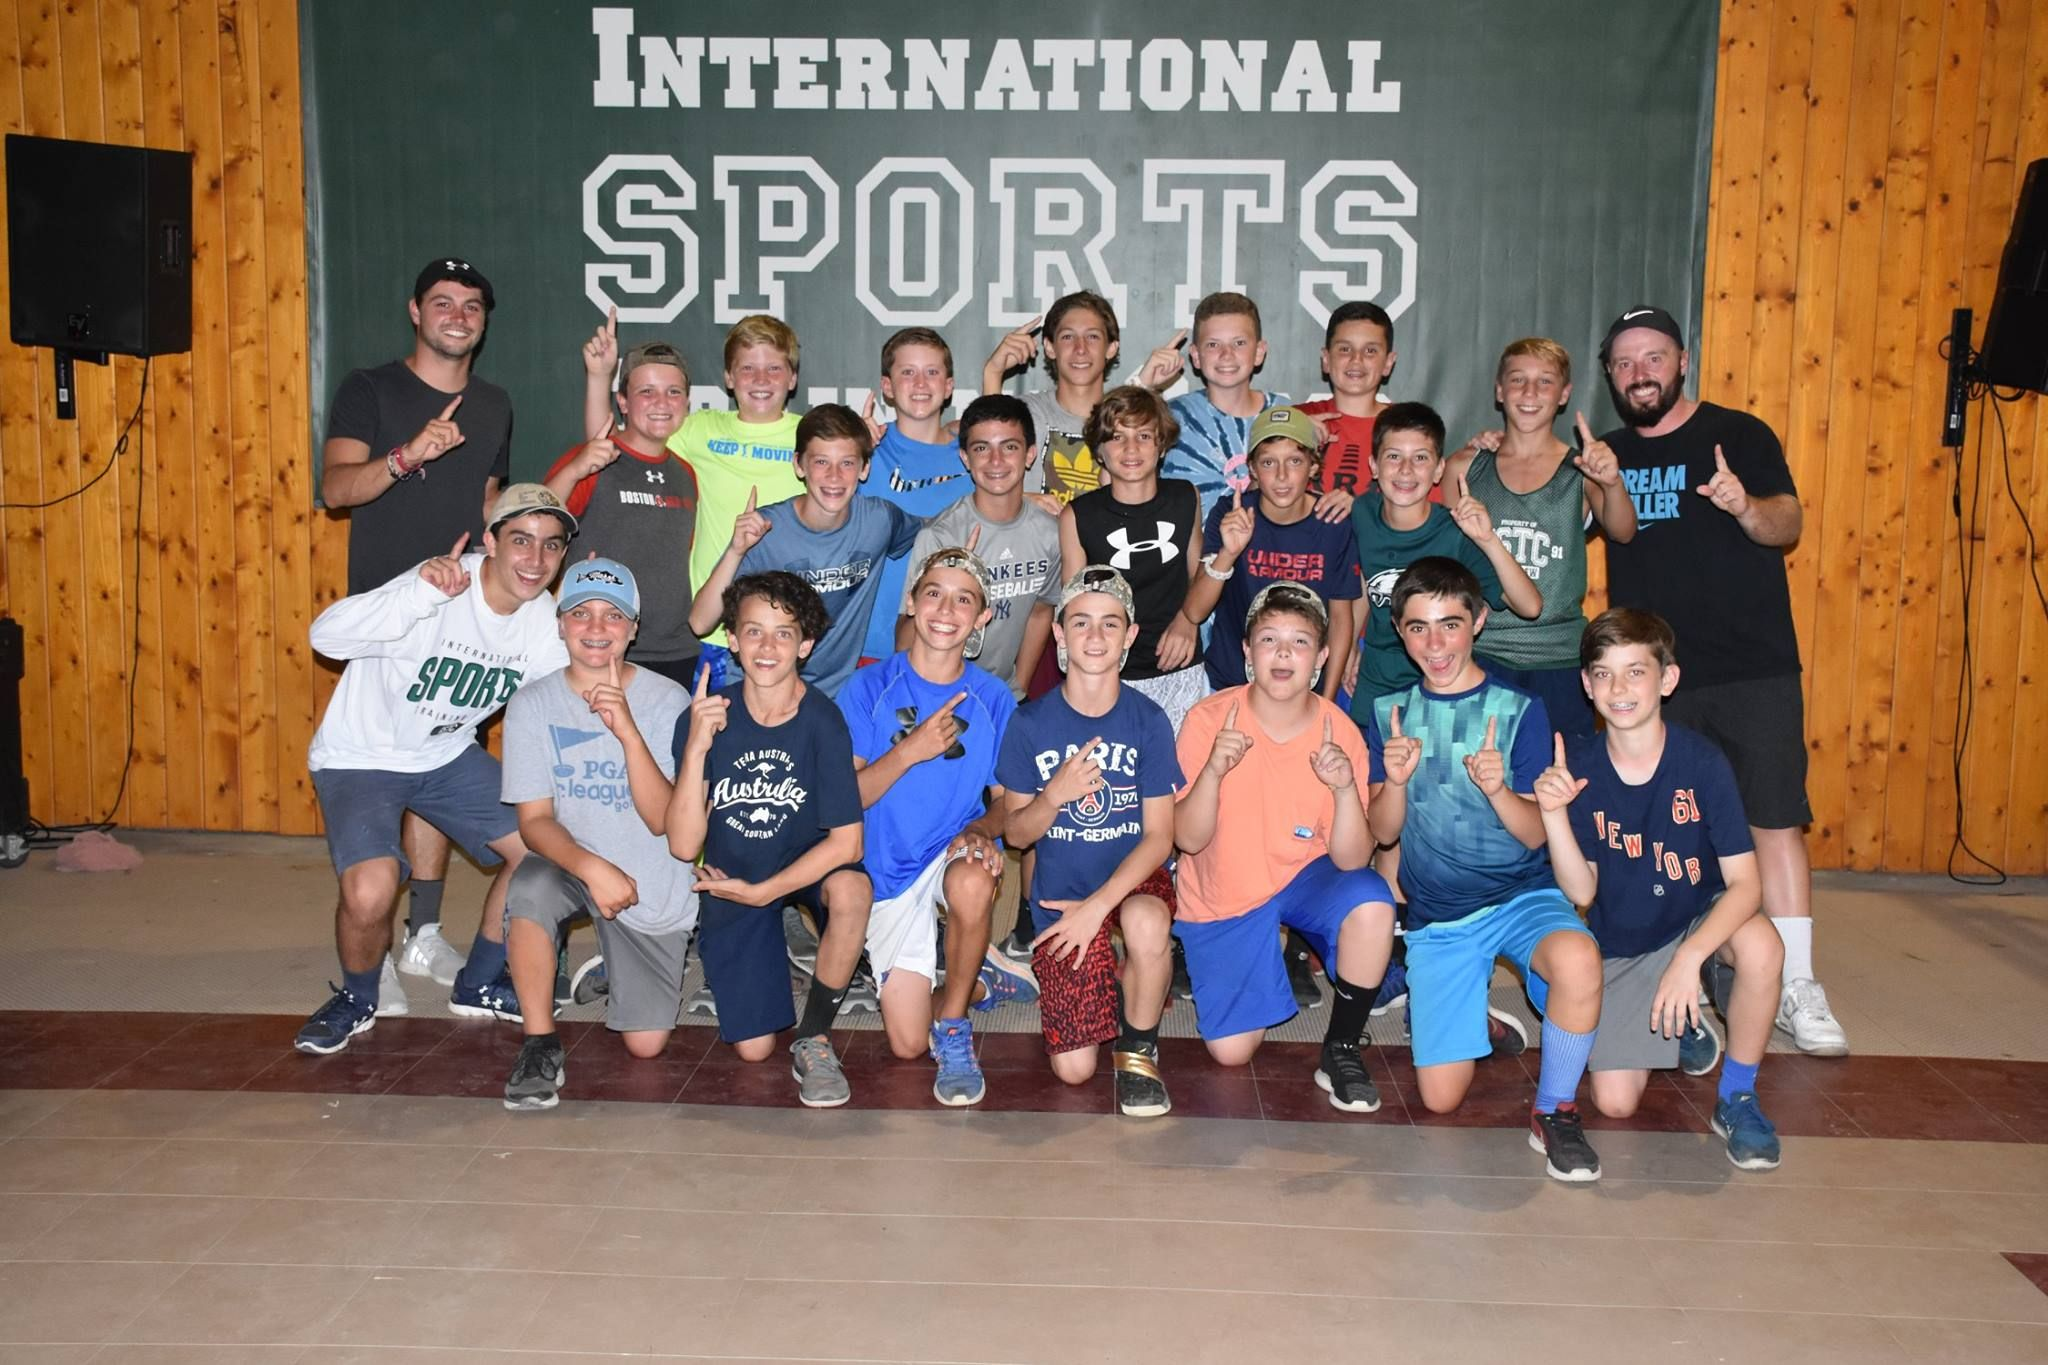 International Sports Training Camp Istc Is A Summer Sports Camp For Kids Istc Combines Traditional Camping Experiences Sports Training Training Camp Sports